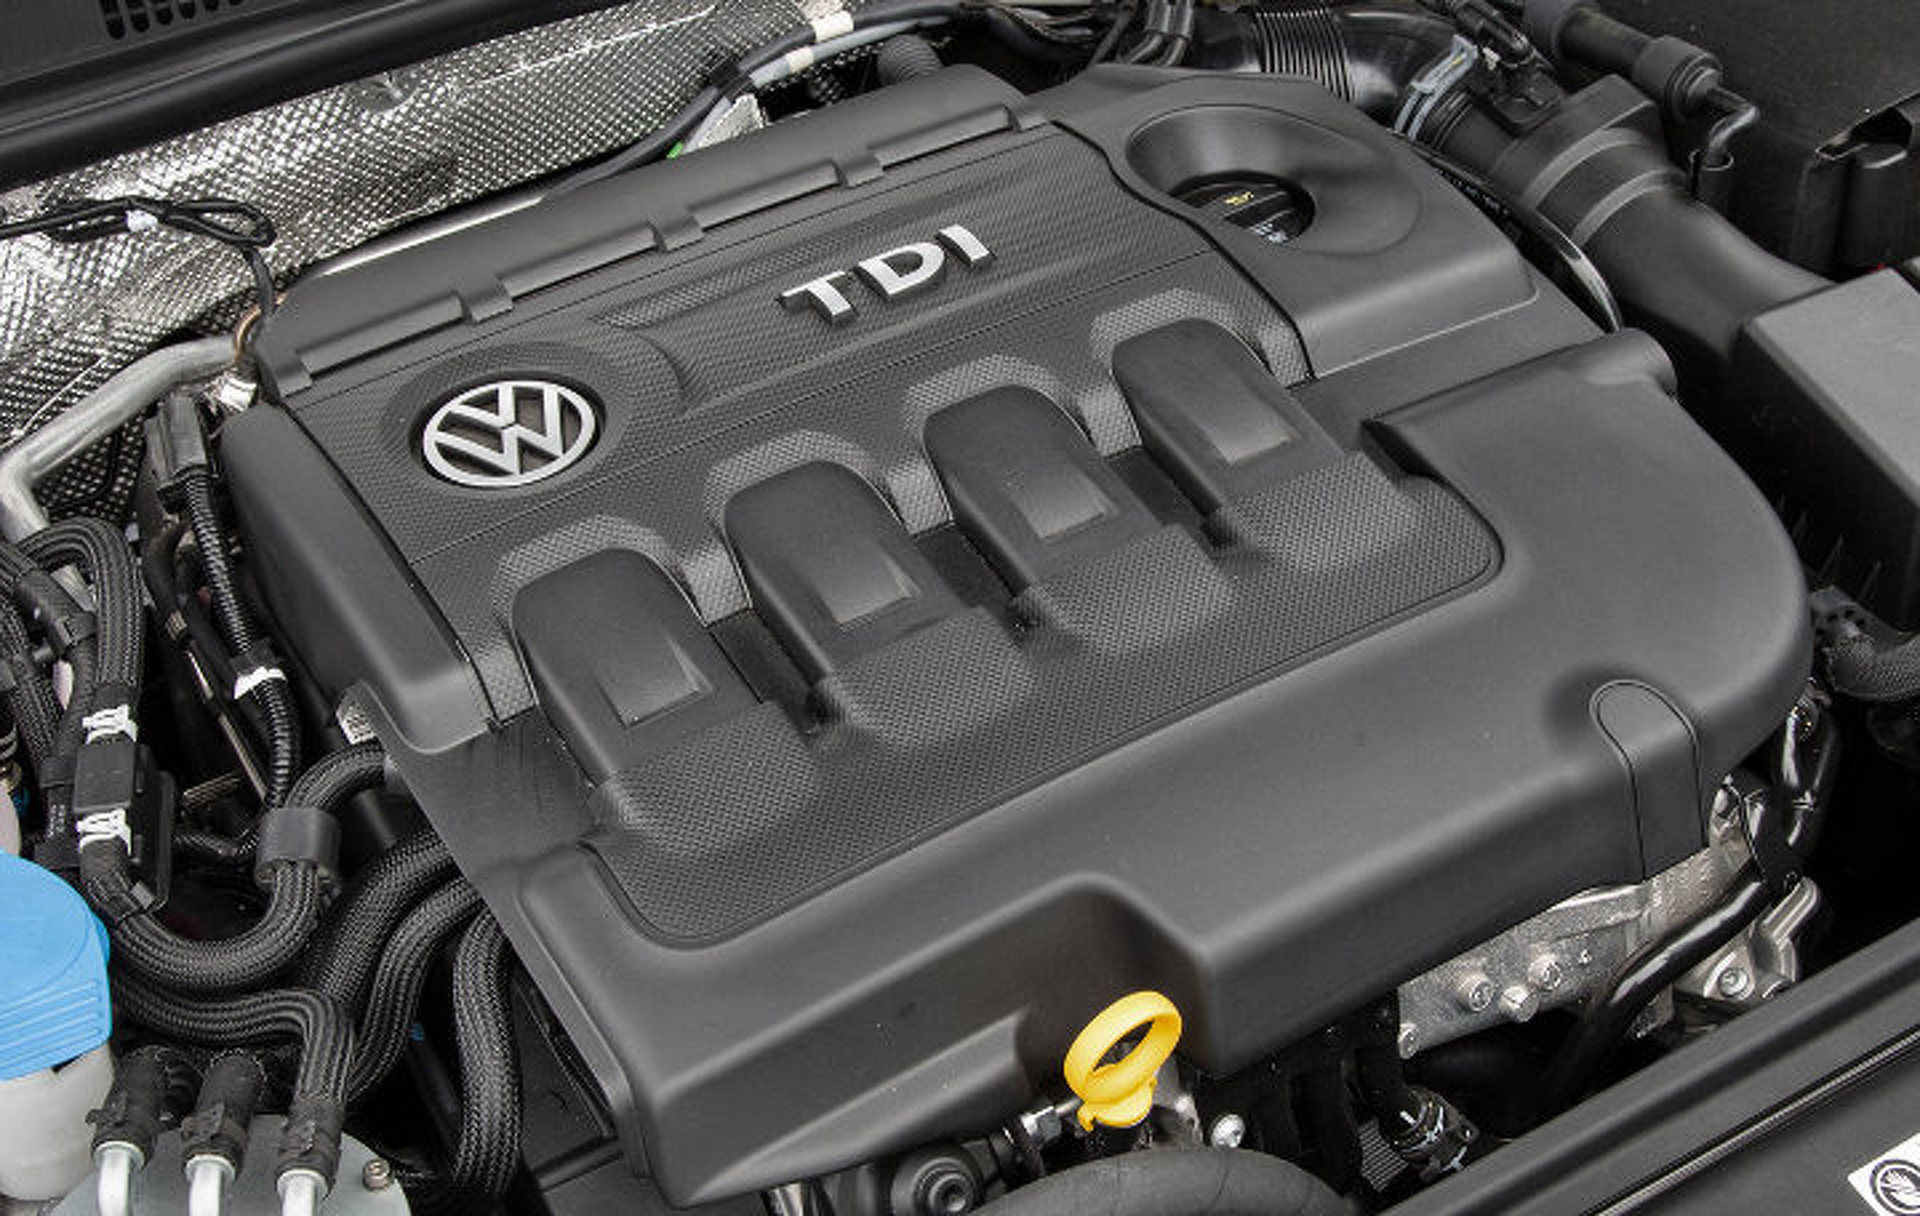 Volkswagen Nearing Fixes for Engines Affected by Dieselgate